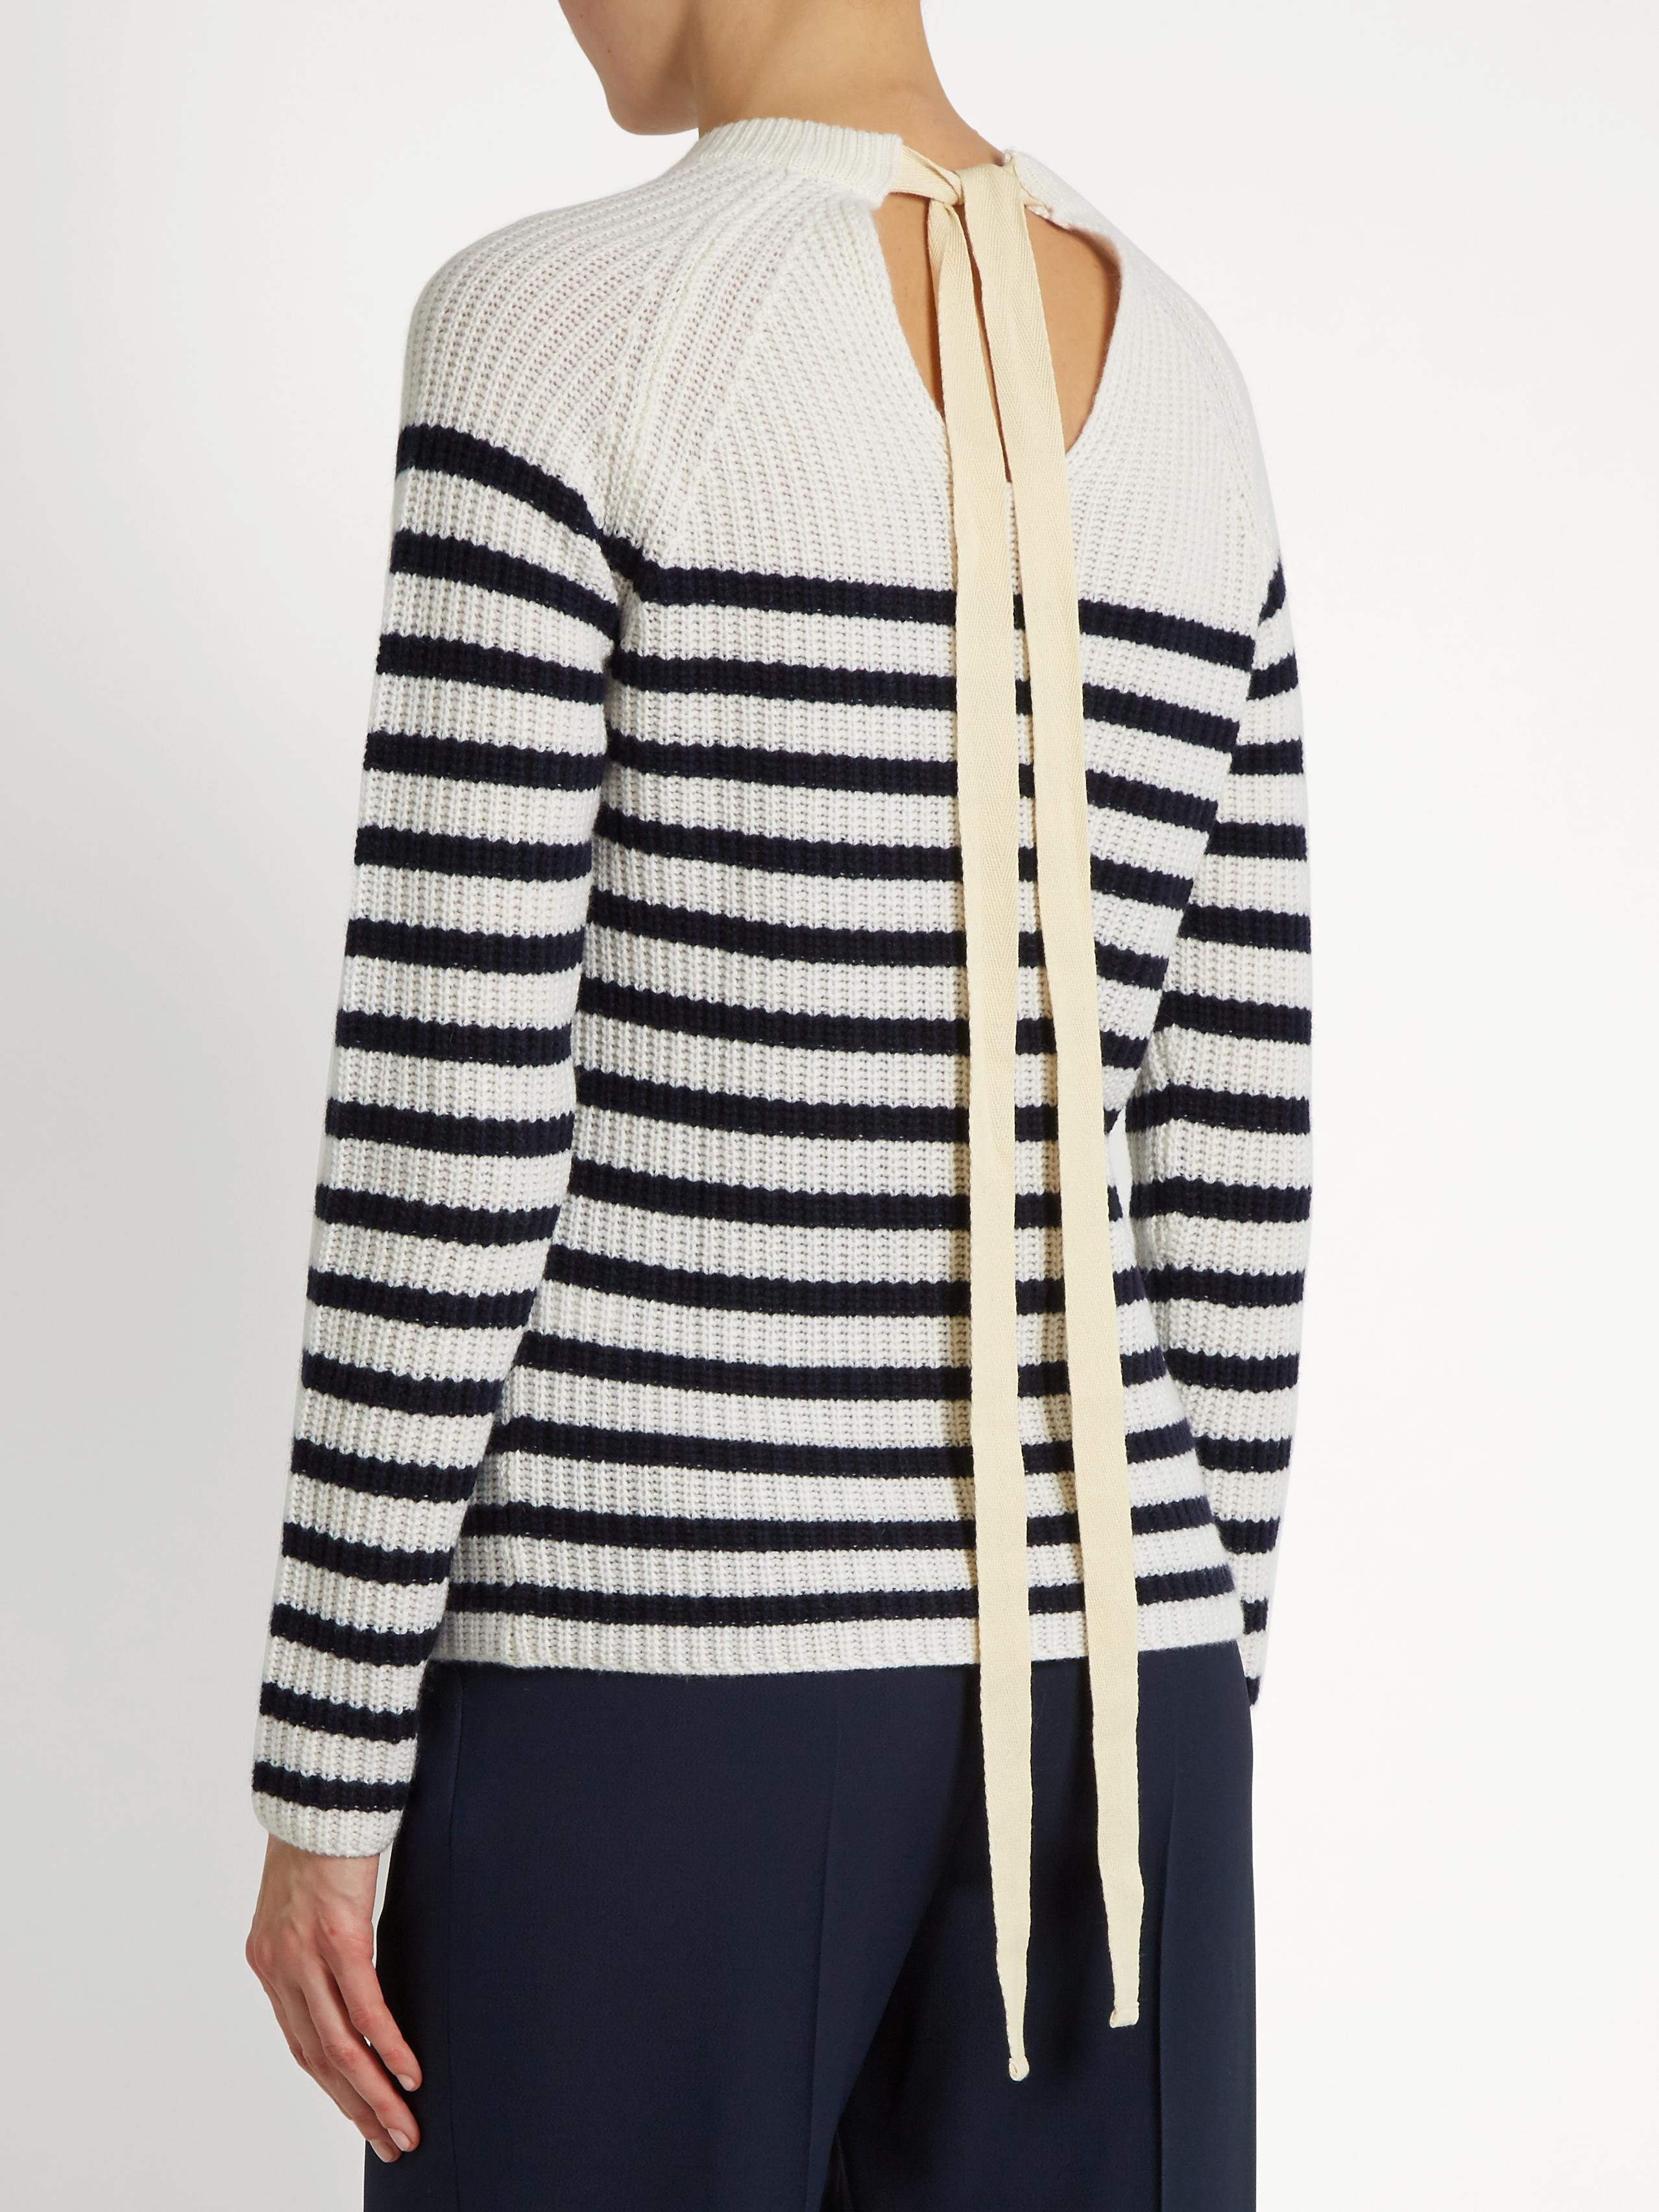 striped jumper - White Joseph Free Shipping Geniue Stockist Discount Codes Shopping Online Clearance Top Quality Where Can You Find NRNbzAjRVY